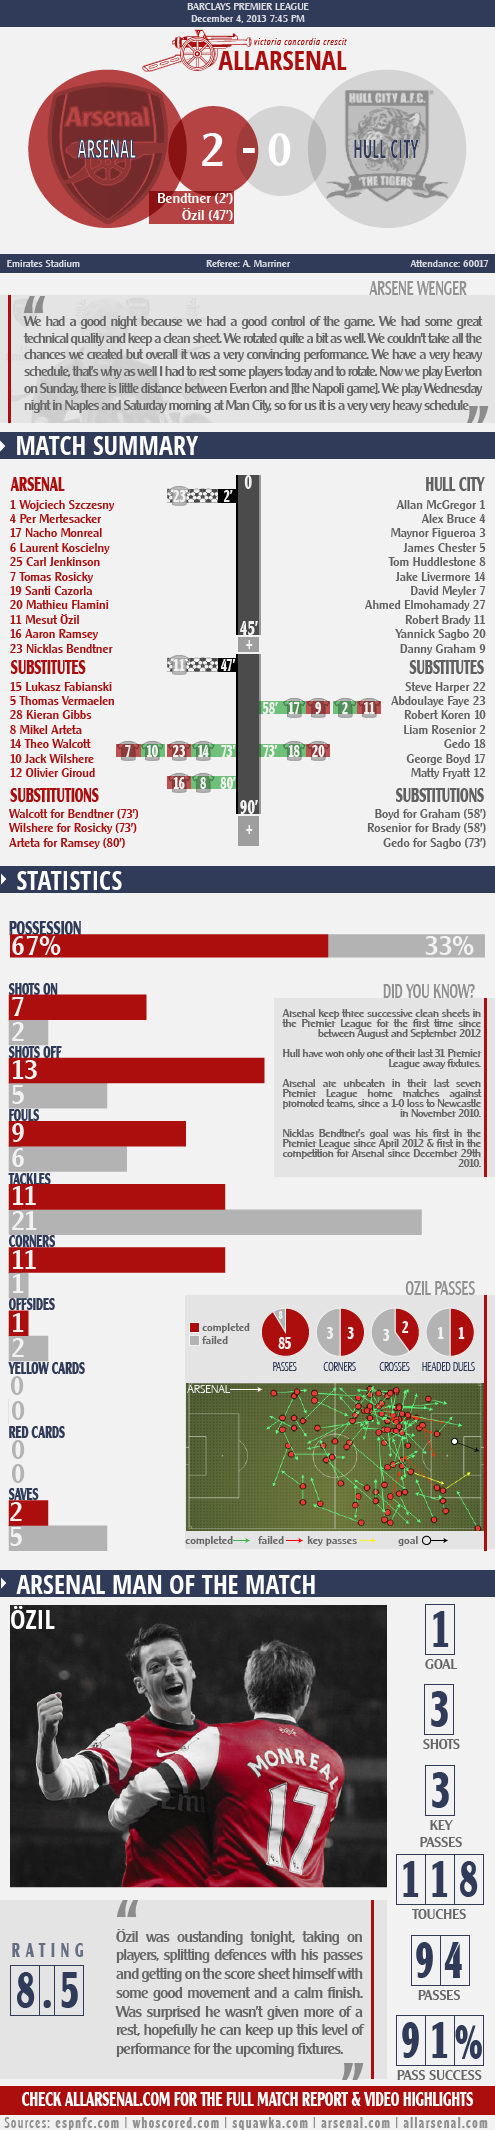 allarsenal-arsenal vs hull city infographic131204-01